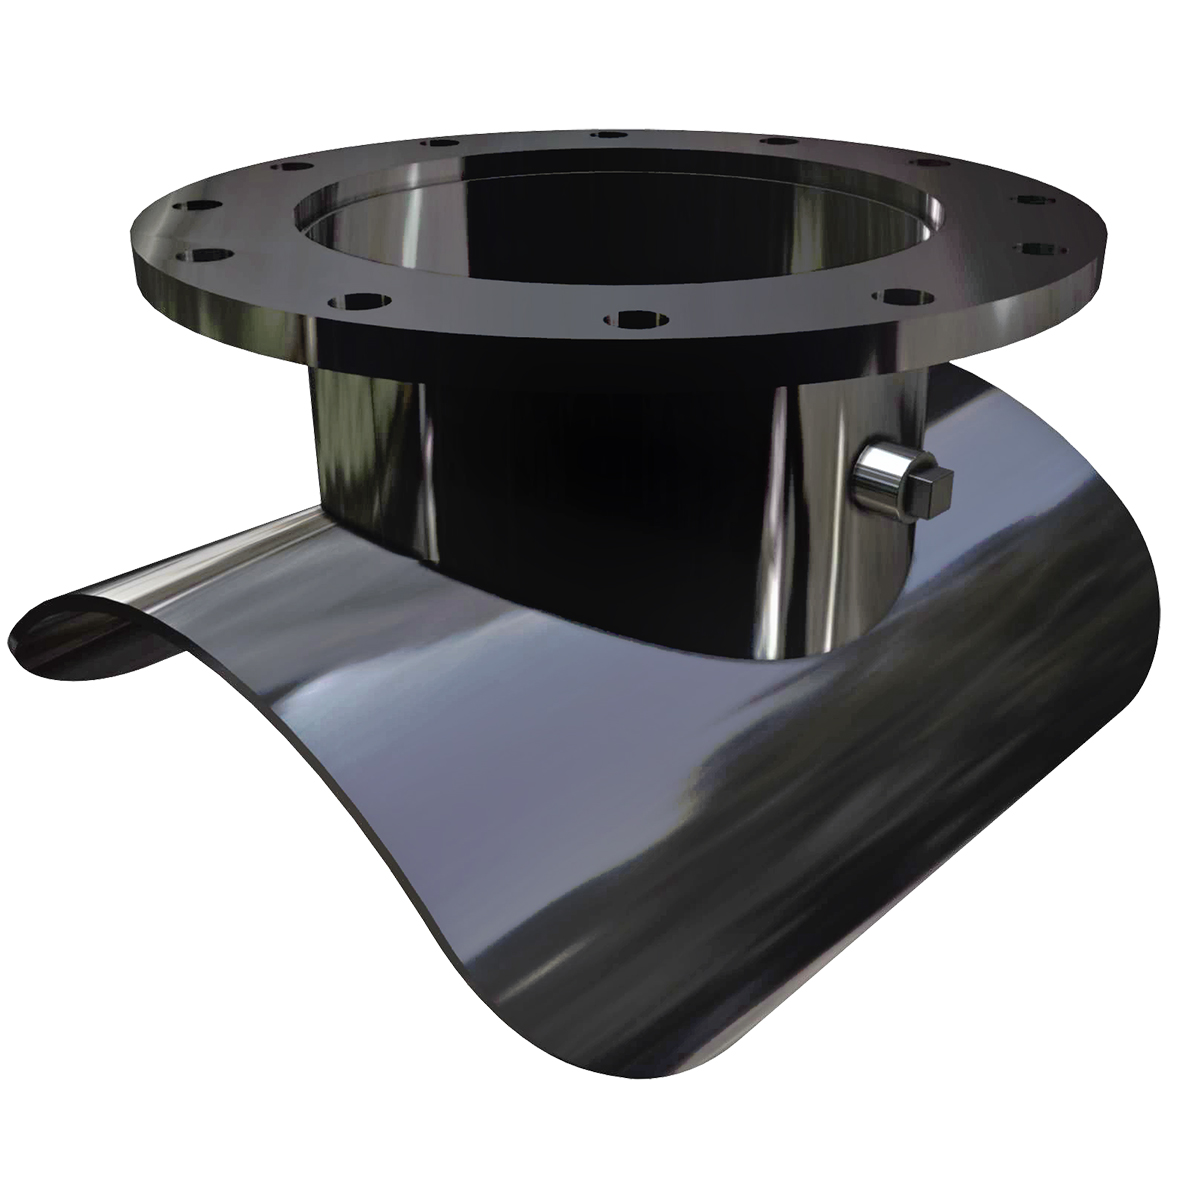 FTS445 - Fabricated steel tapping sleeve for weld-on outlets